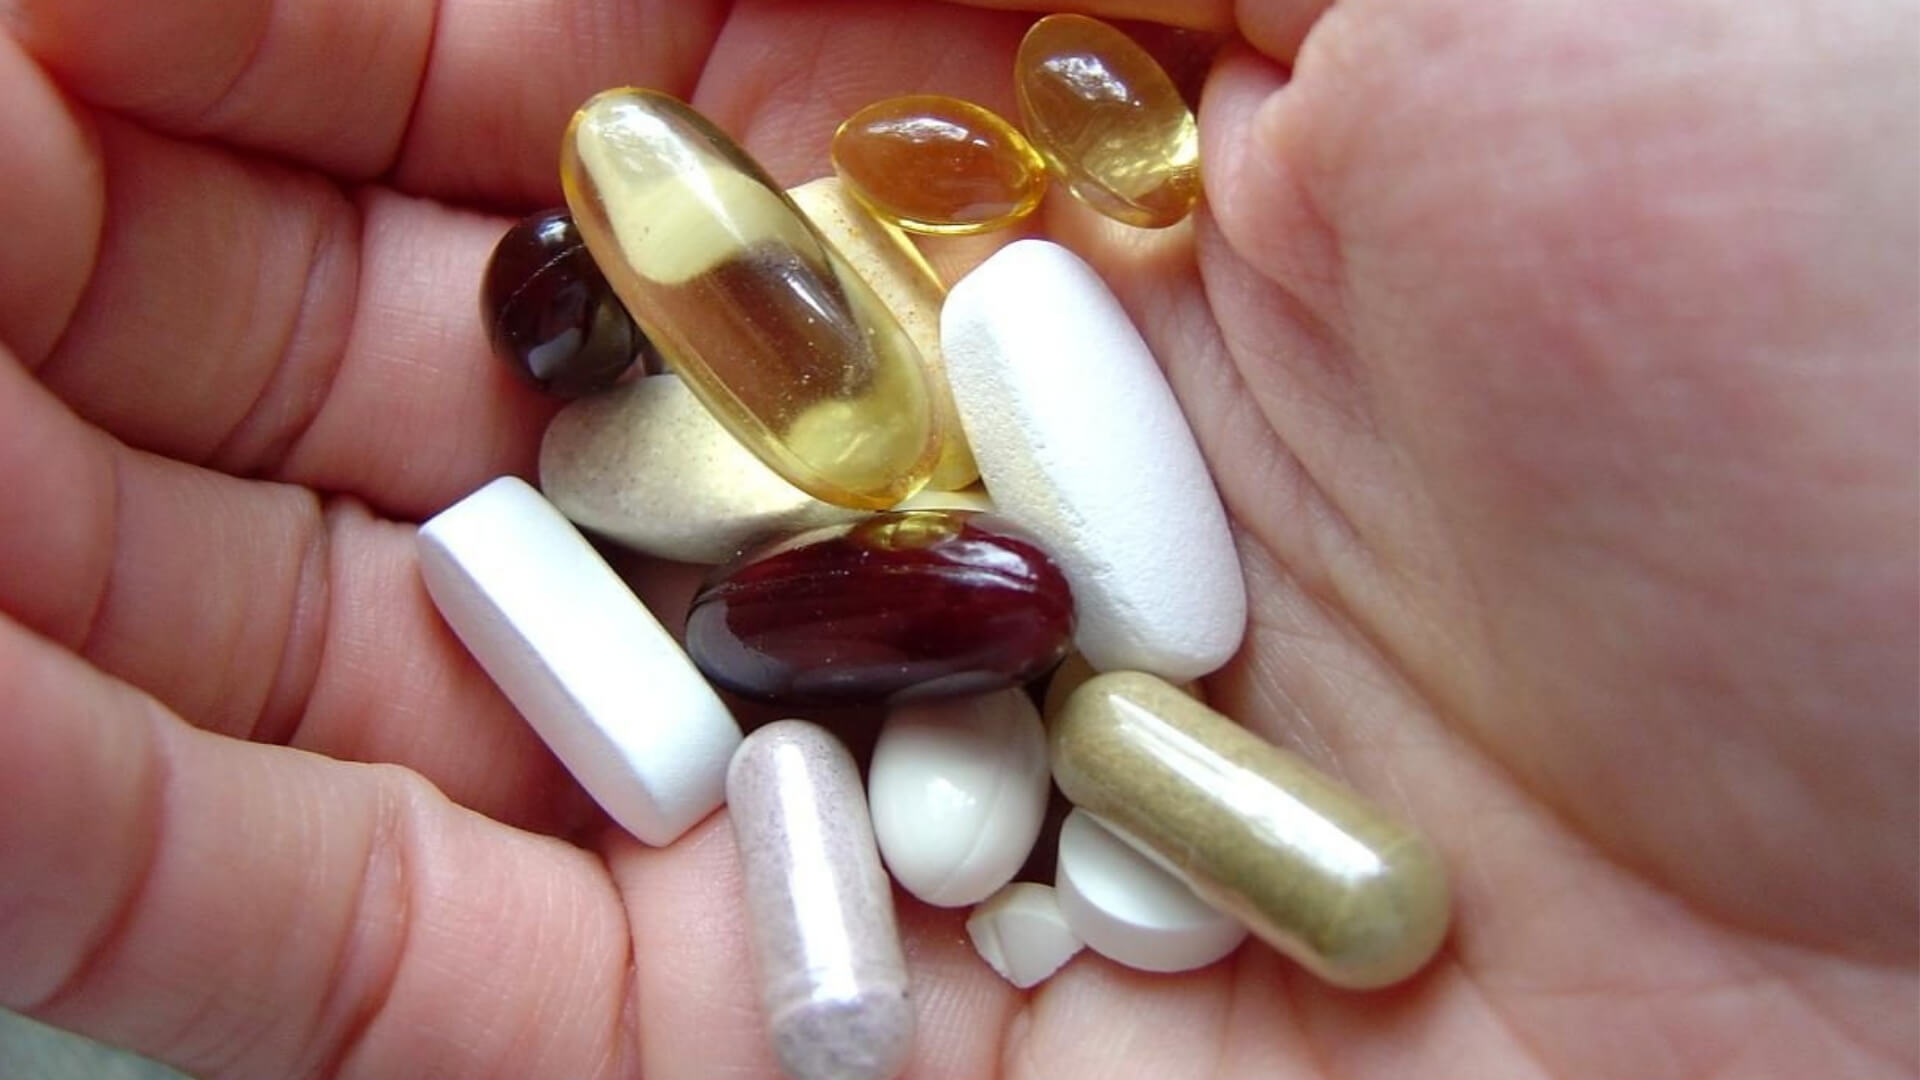 3 Reasons Multi-Vitamins Cause More Harm Than Good